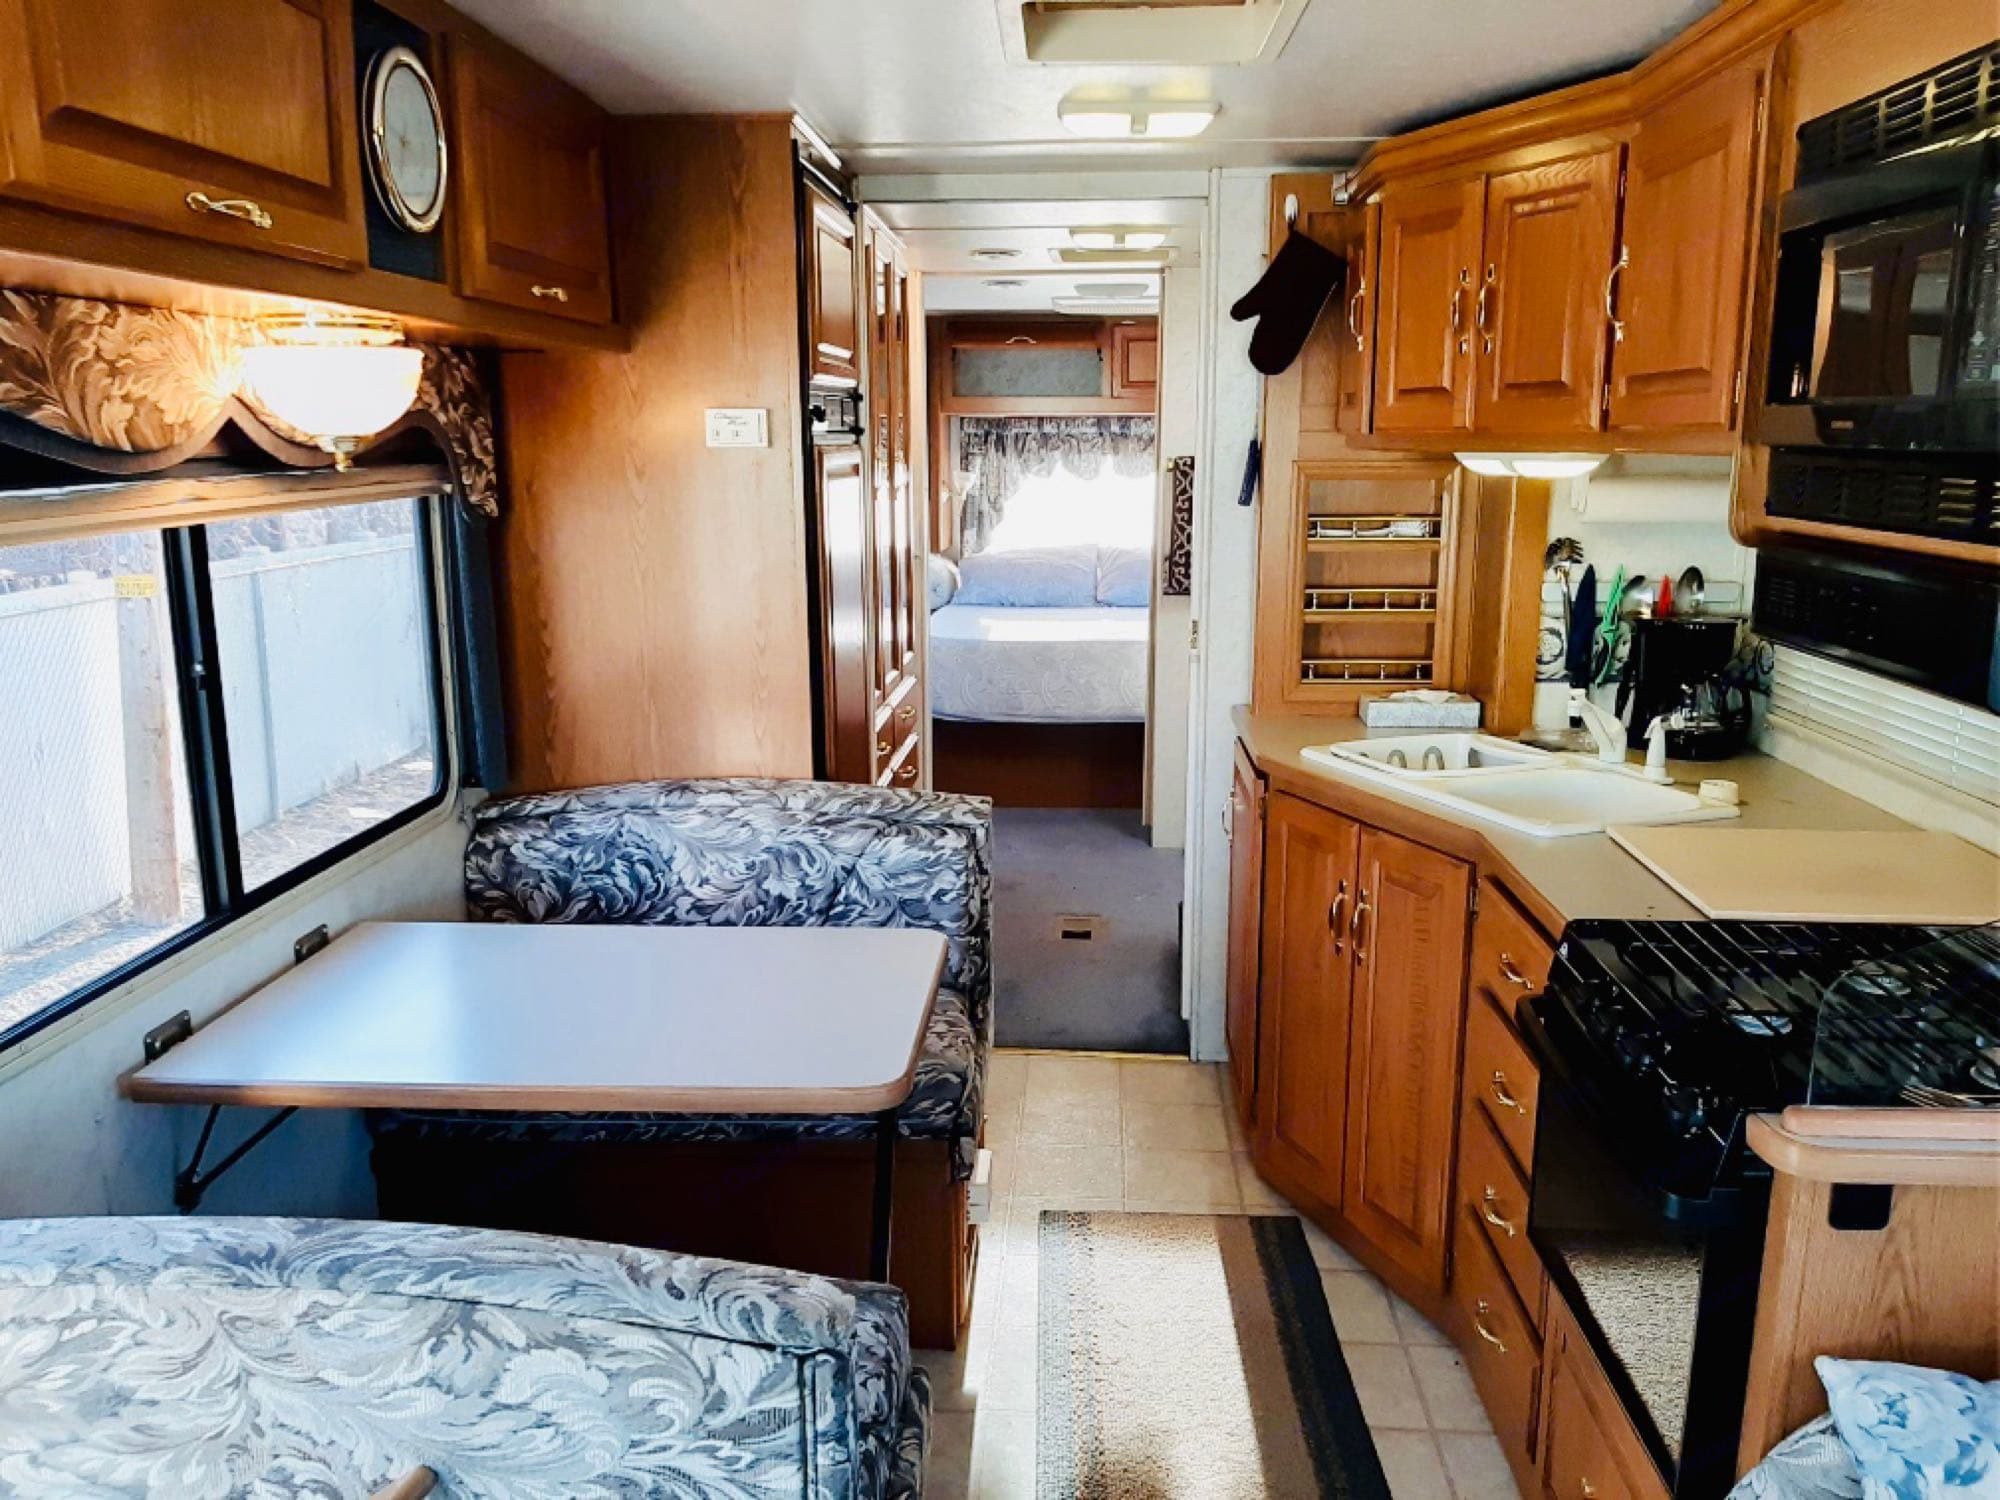 while the slide out is still in, you have a good amount of space to entertain and spend time with family. It's clean and very comfortable. For sleeping the table converts into a full size bed. Propane stove is easy to use and you'll have all the equipment you'll need to make your favorite meals.. Thor Windsport 34k 2000